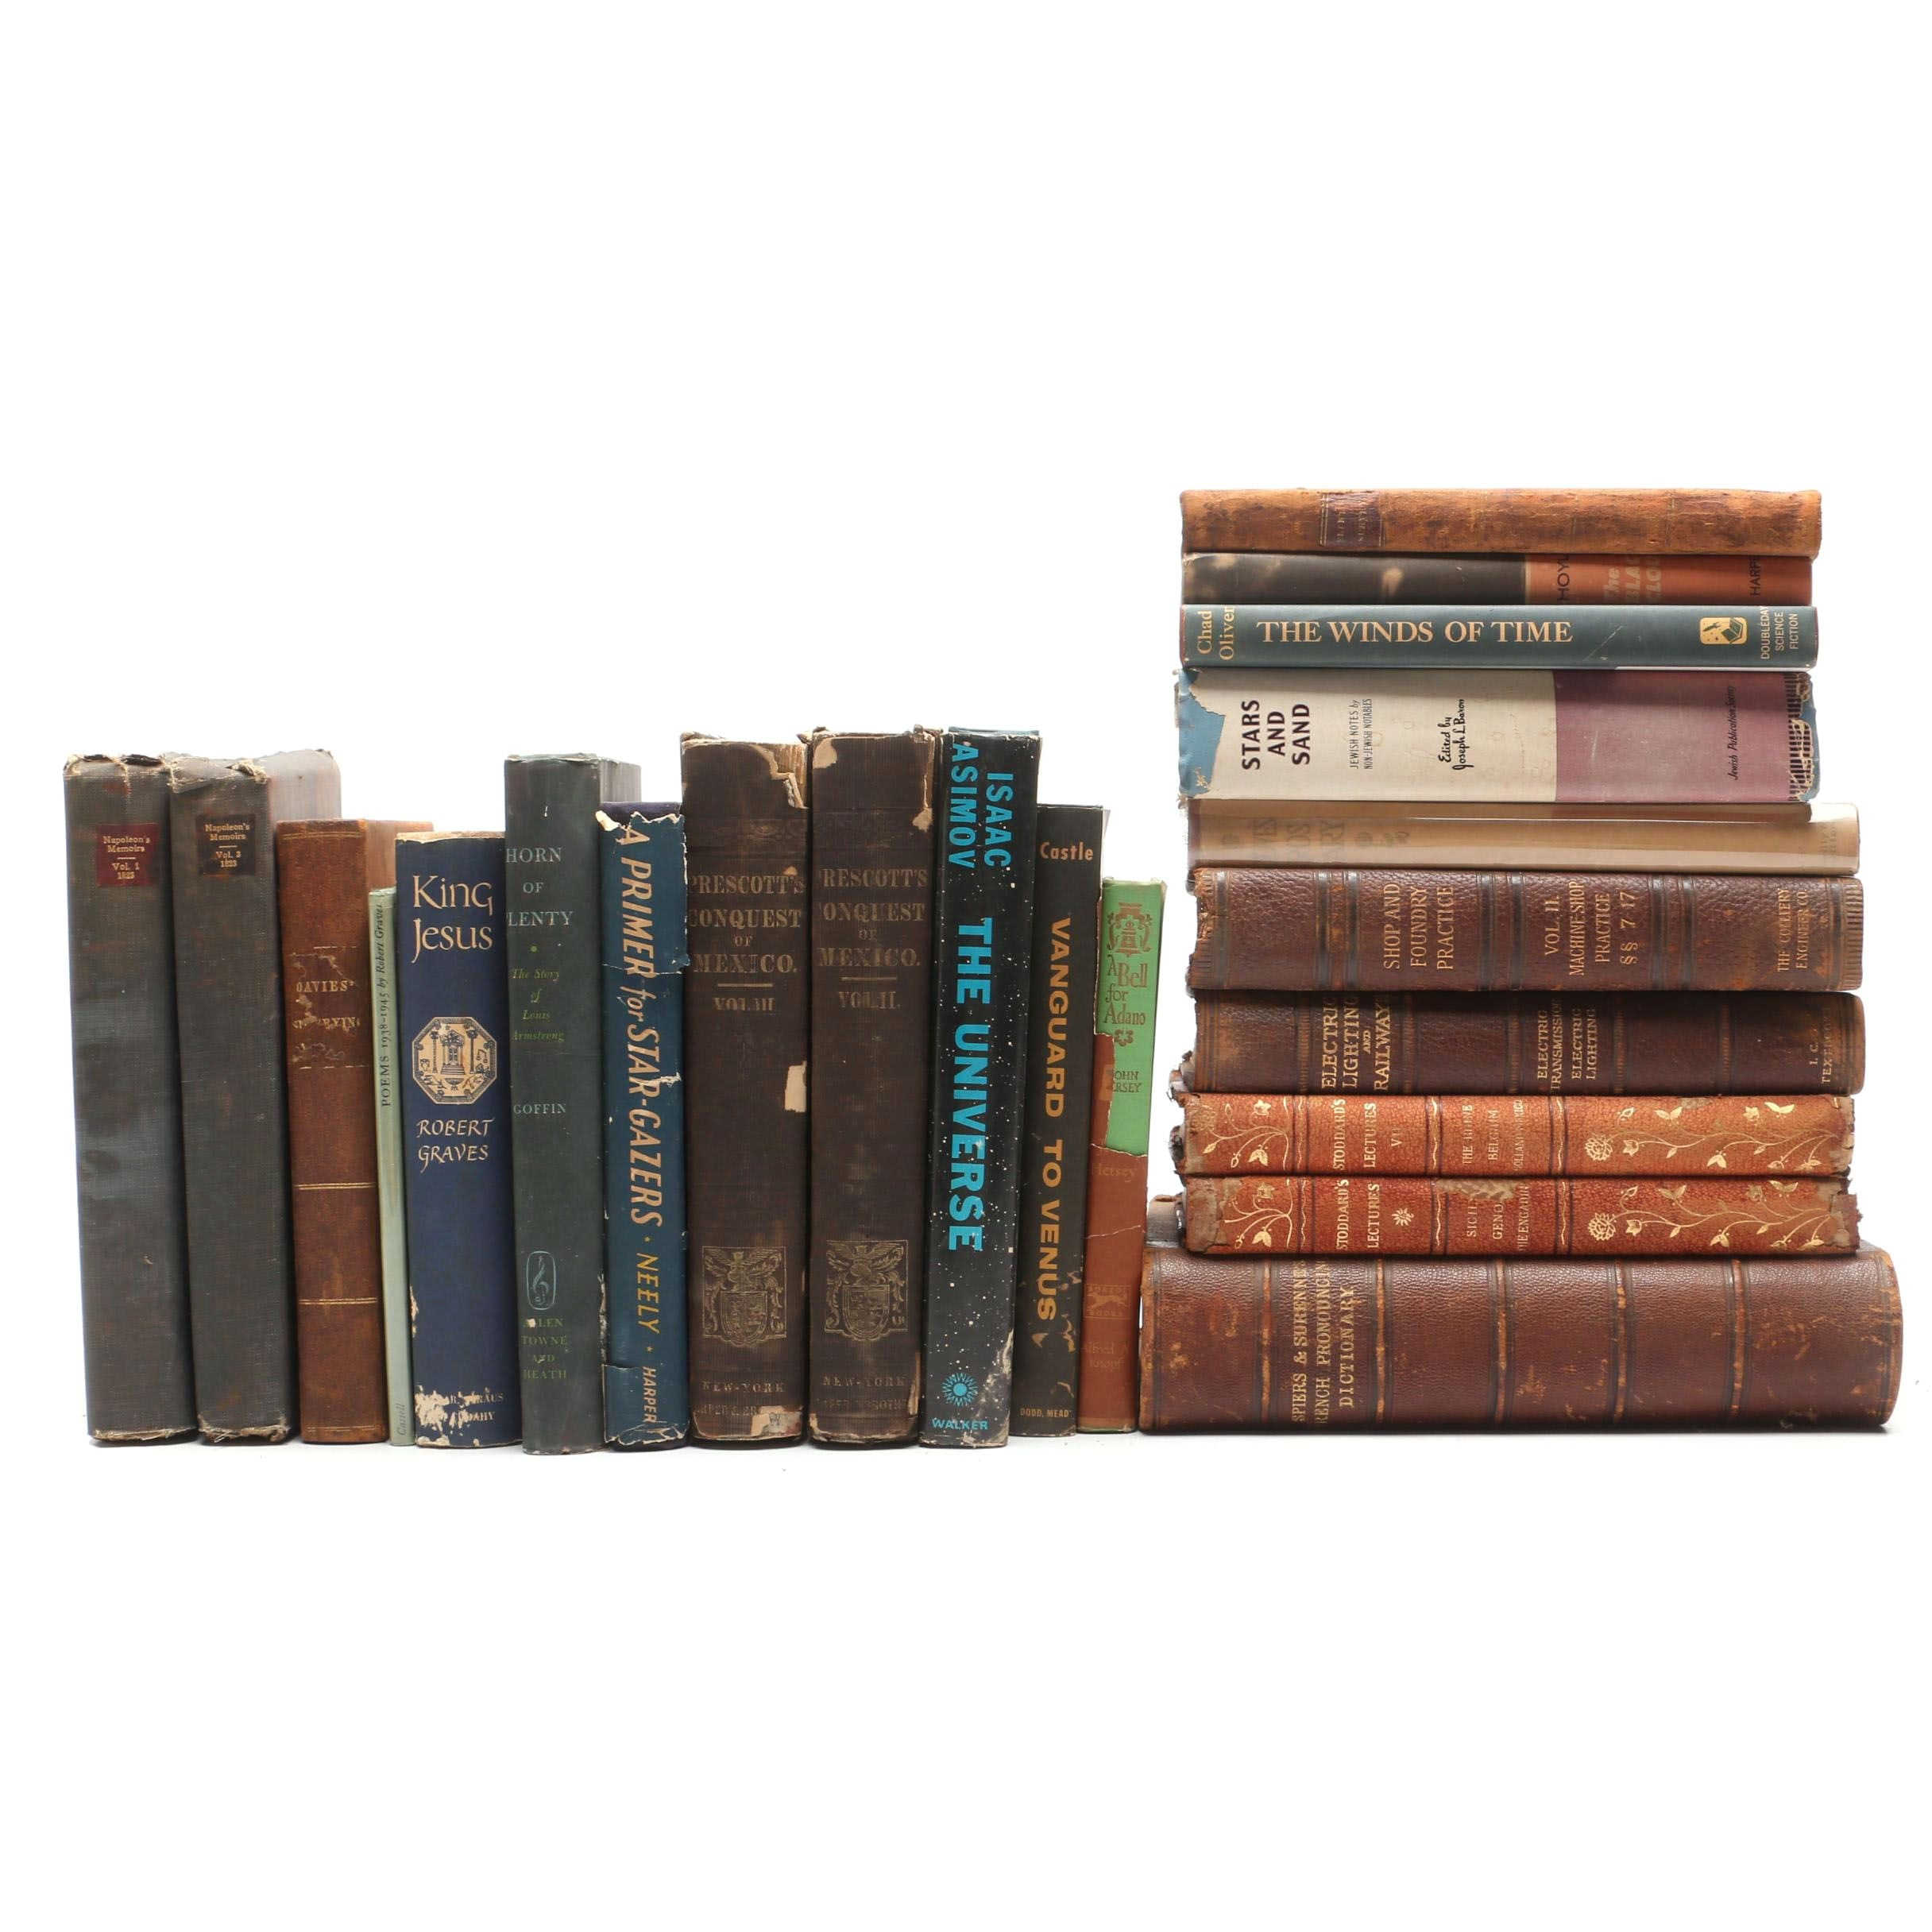 Vintage Cosmology Books and More